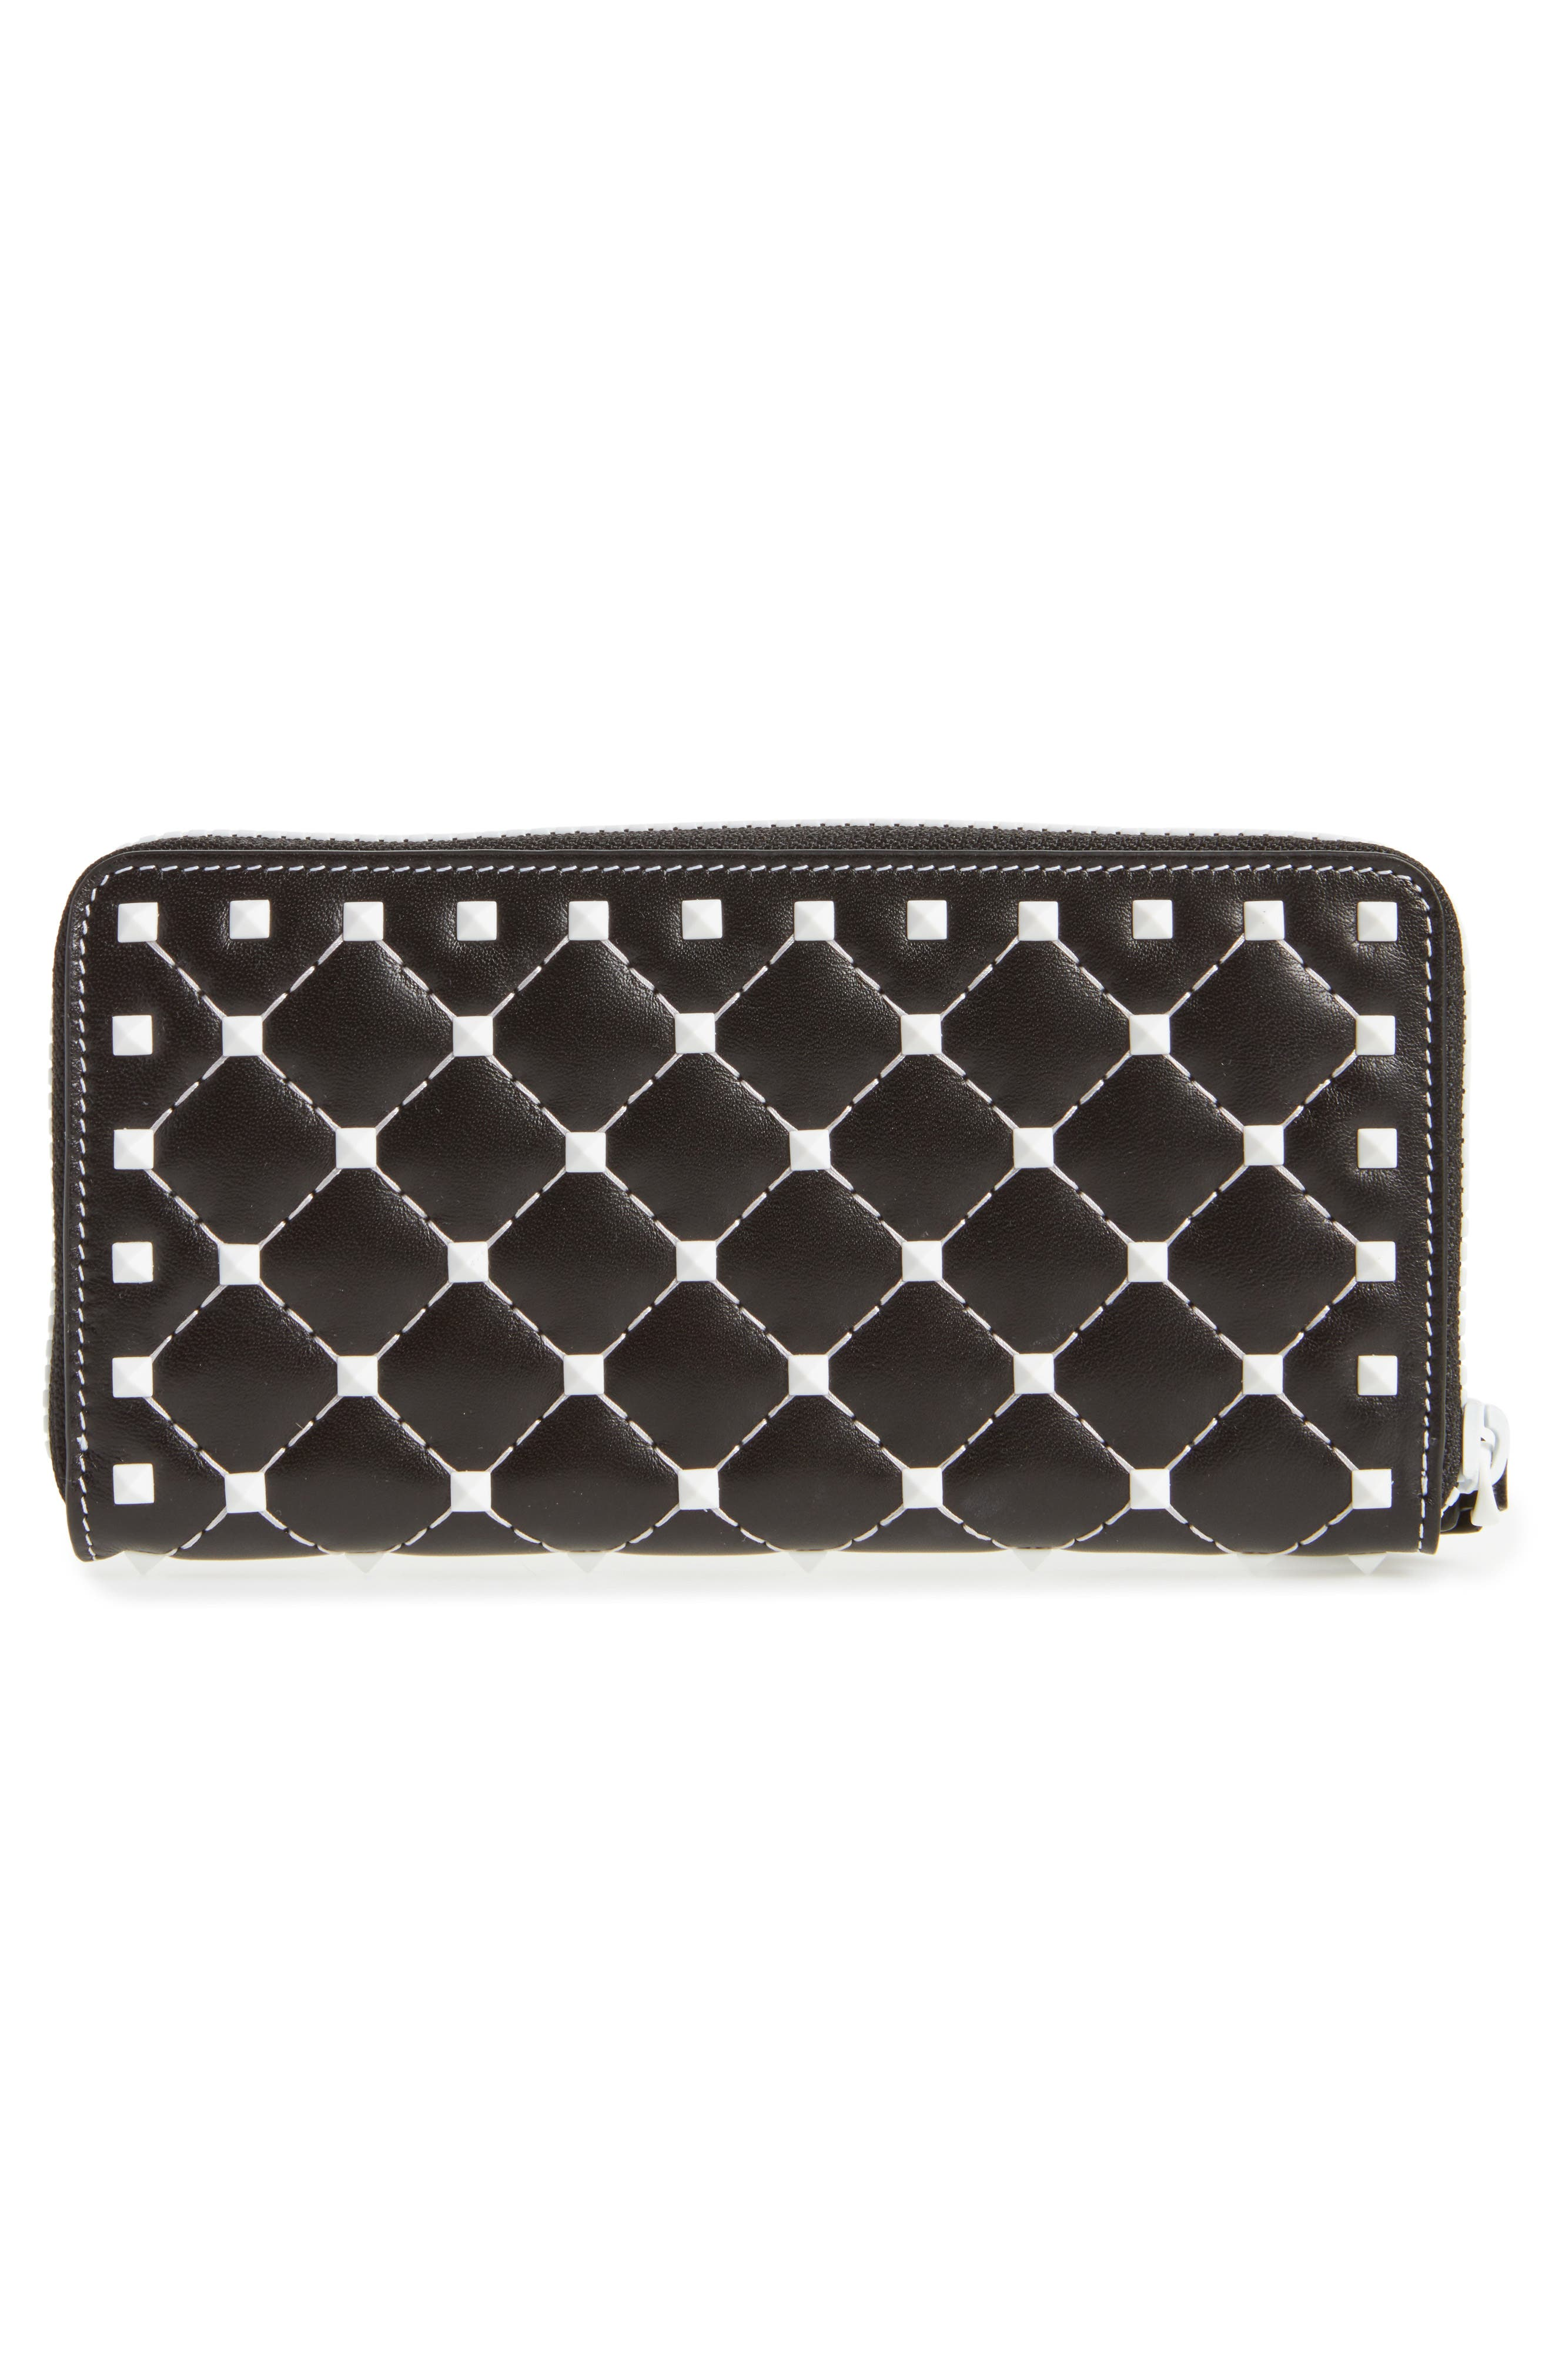 Rockstud Spike Zip Around Leather Wallet,                             Alternate thumbnail 2, color,                             Black